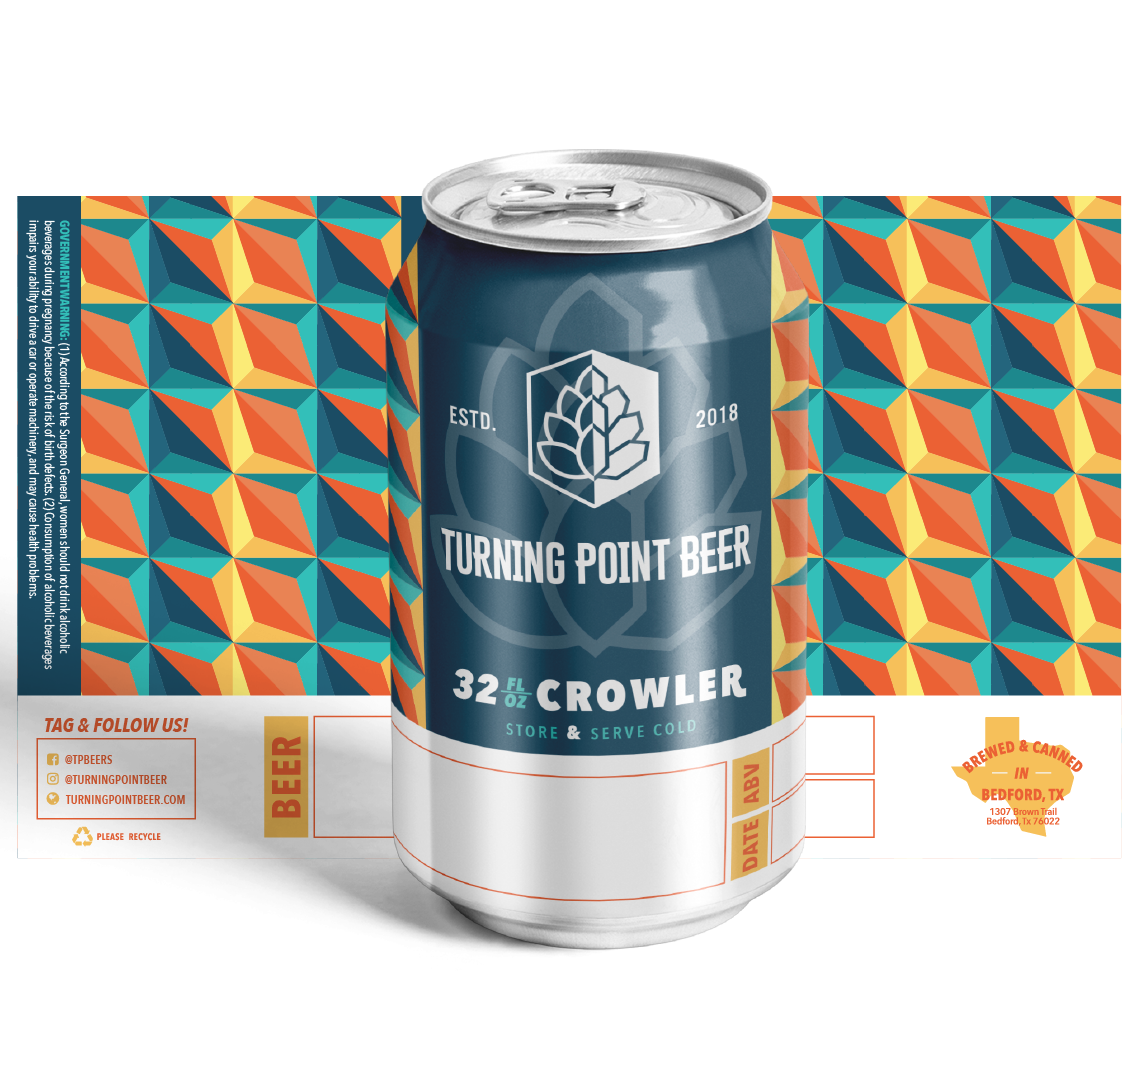 Turning Point Beer - Package Design